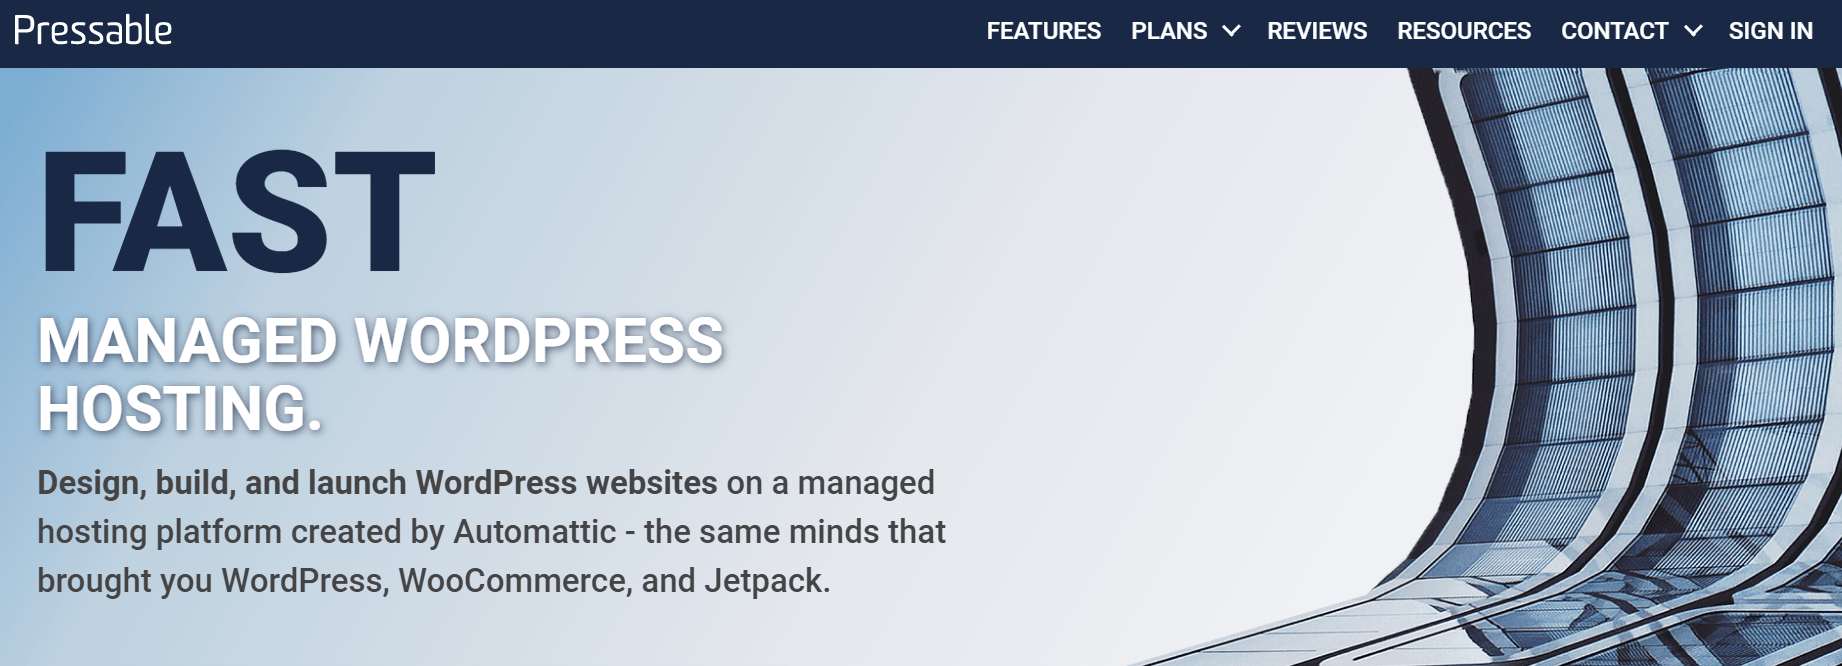 The Pressable homepage.